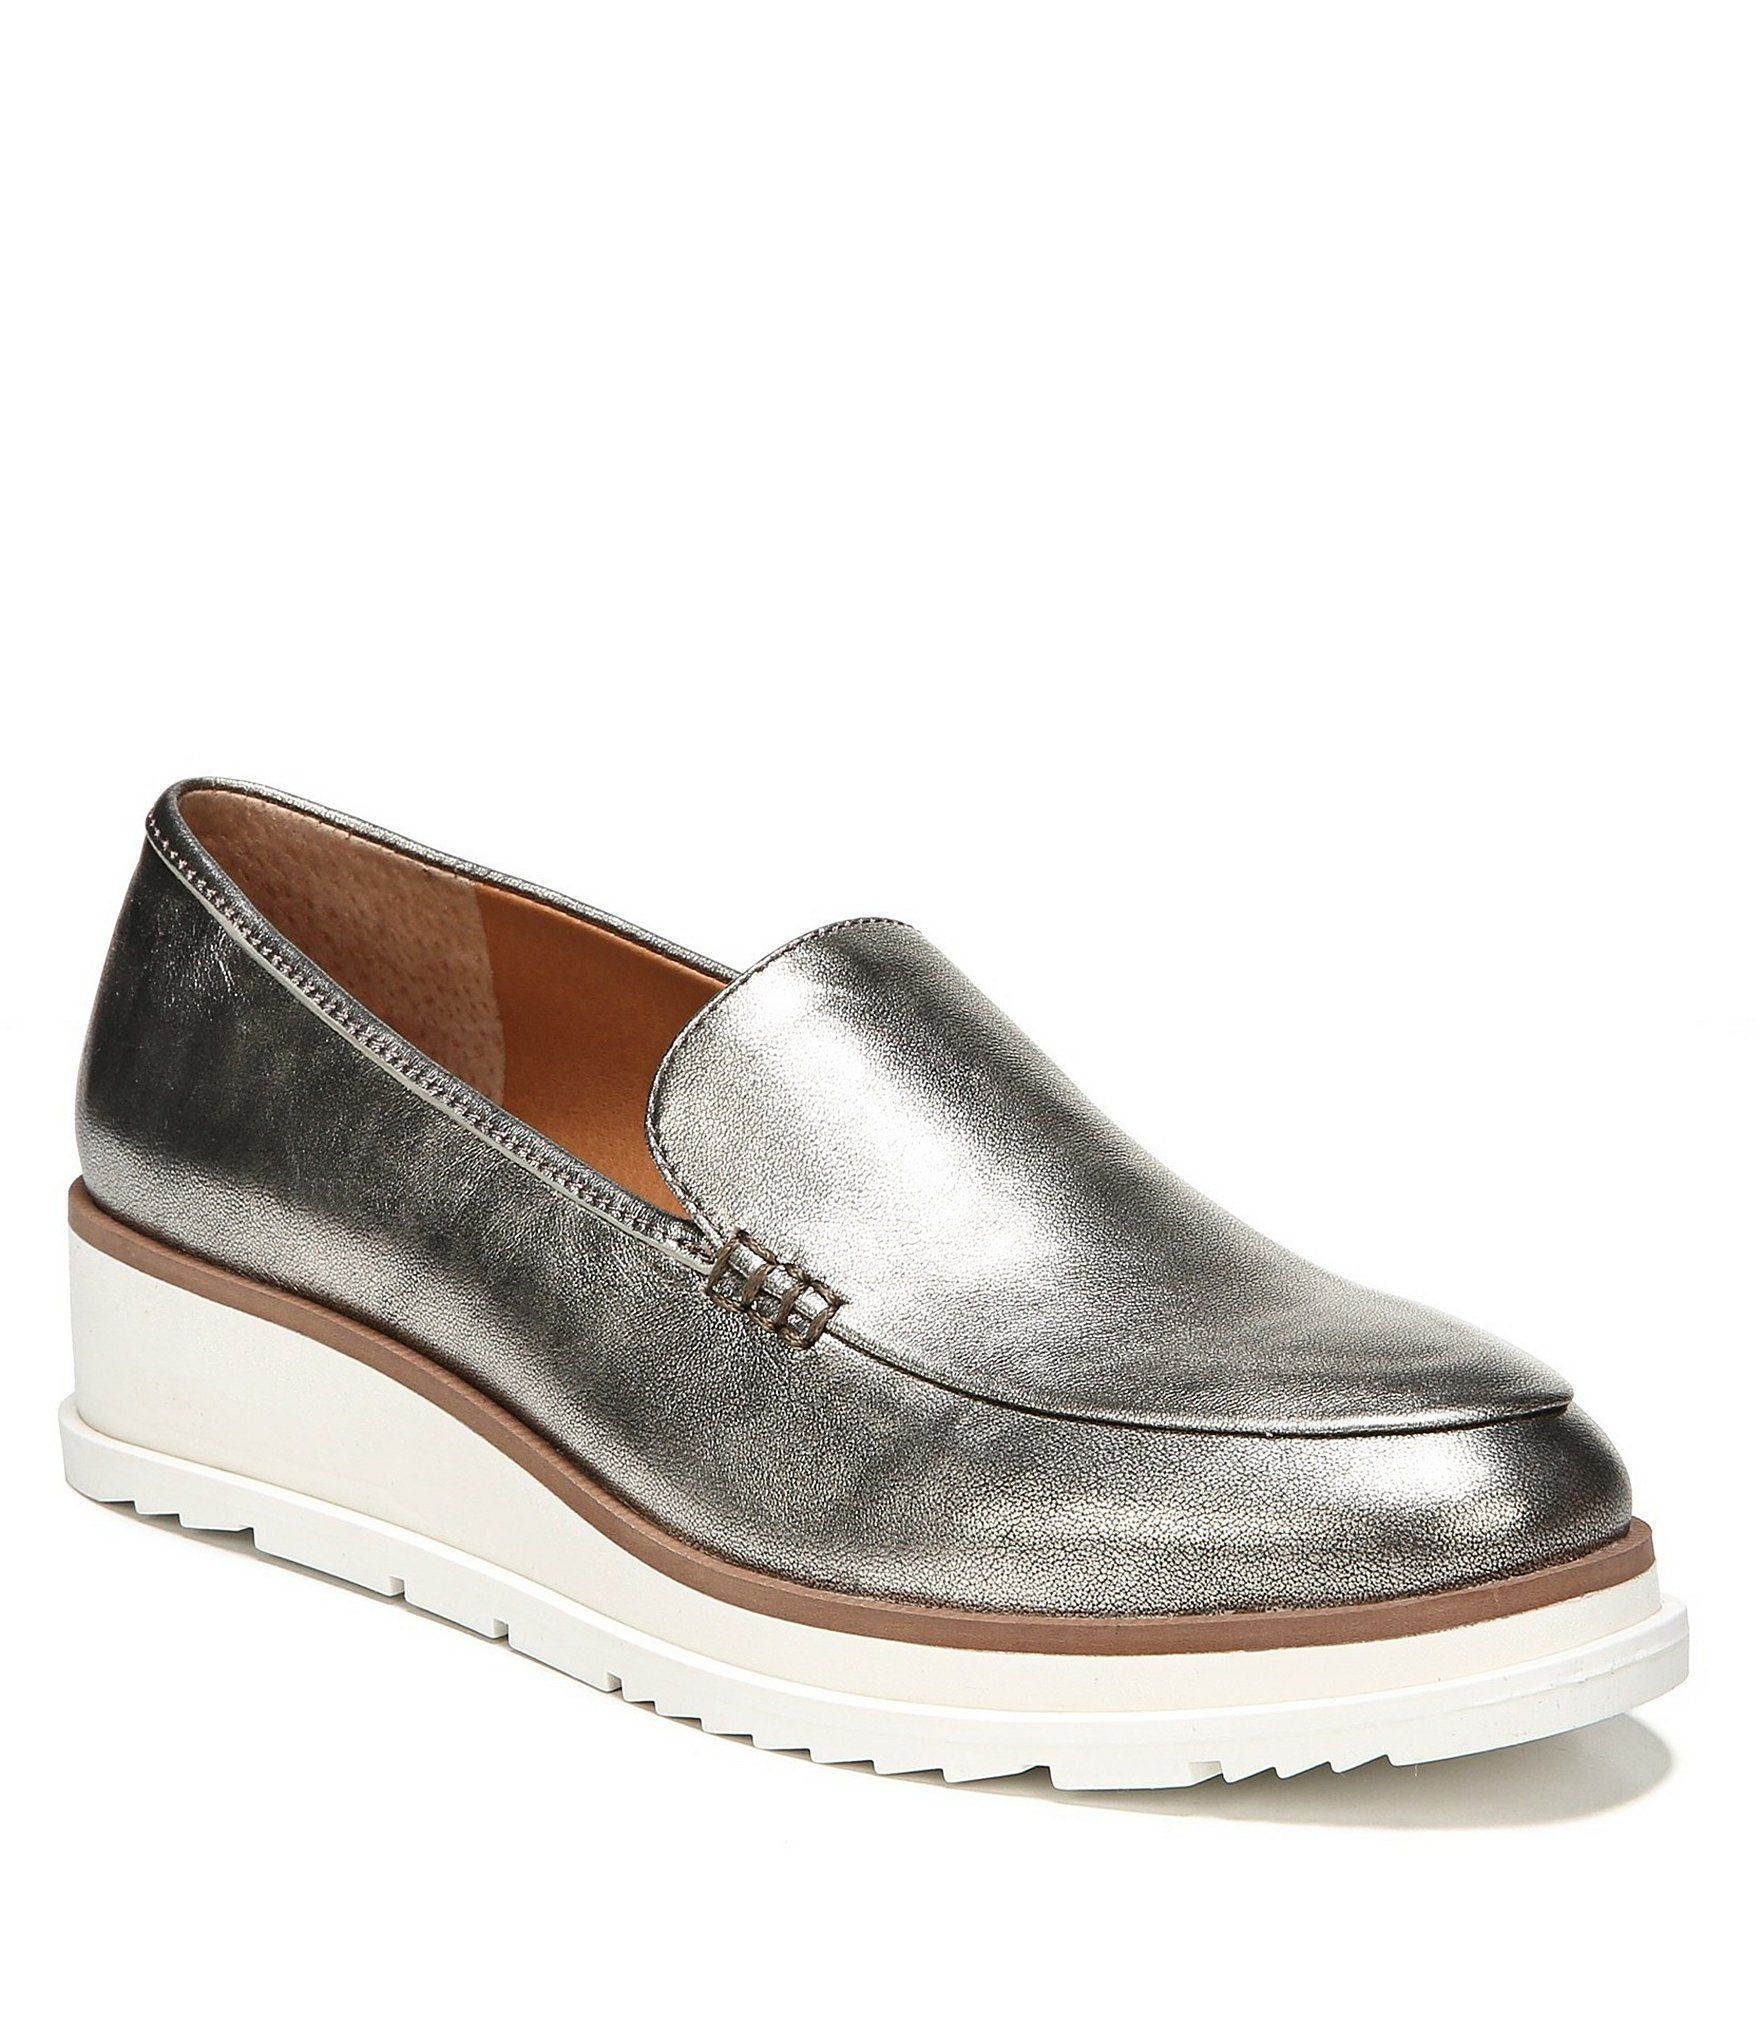 ba5439d9e82 Sarto by Franco Sarto Ayers Metallic Leather Wedge Loafers in 2018 ...